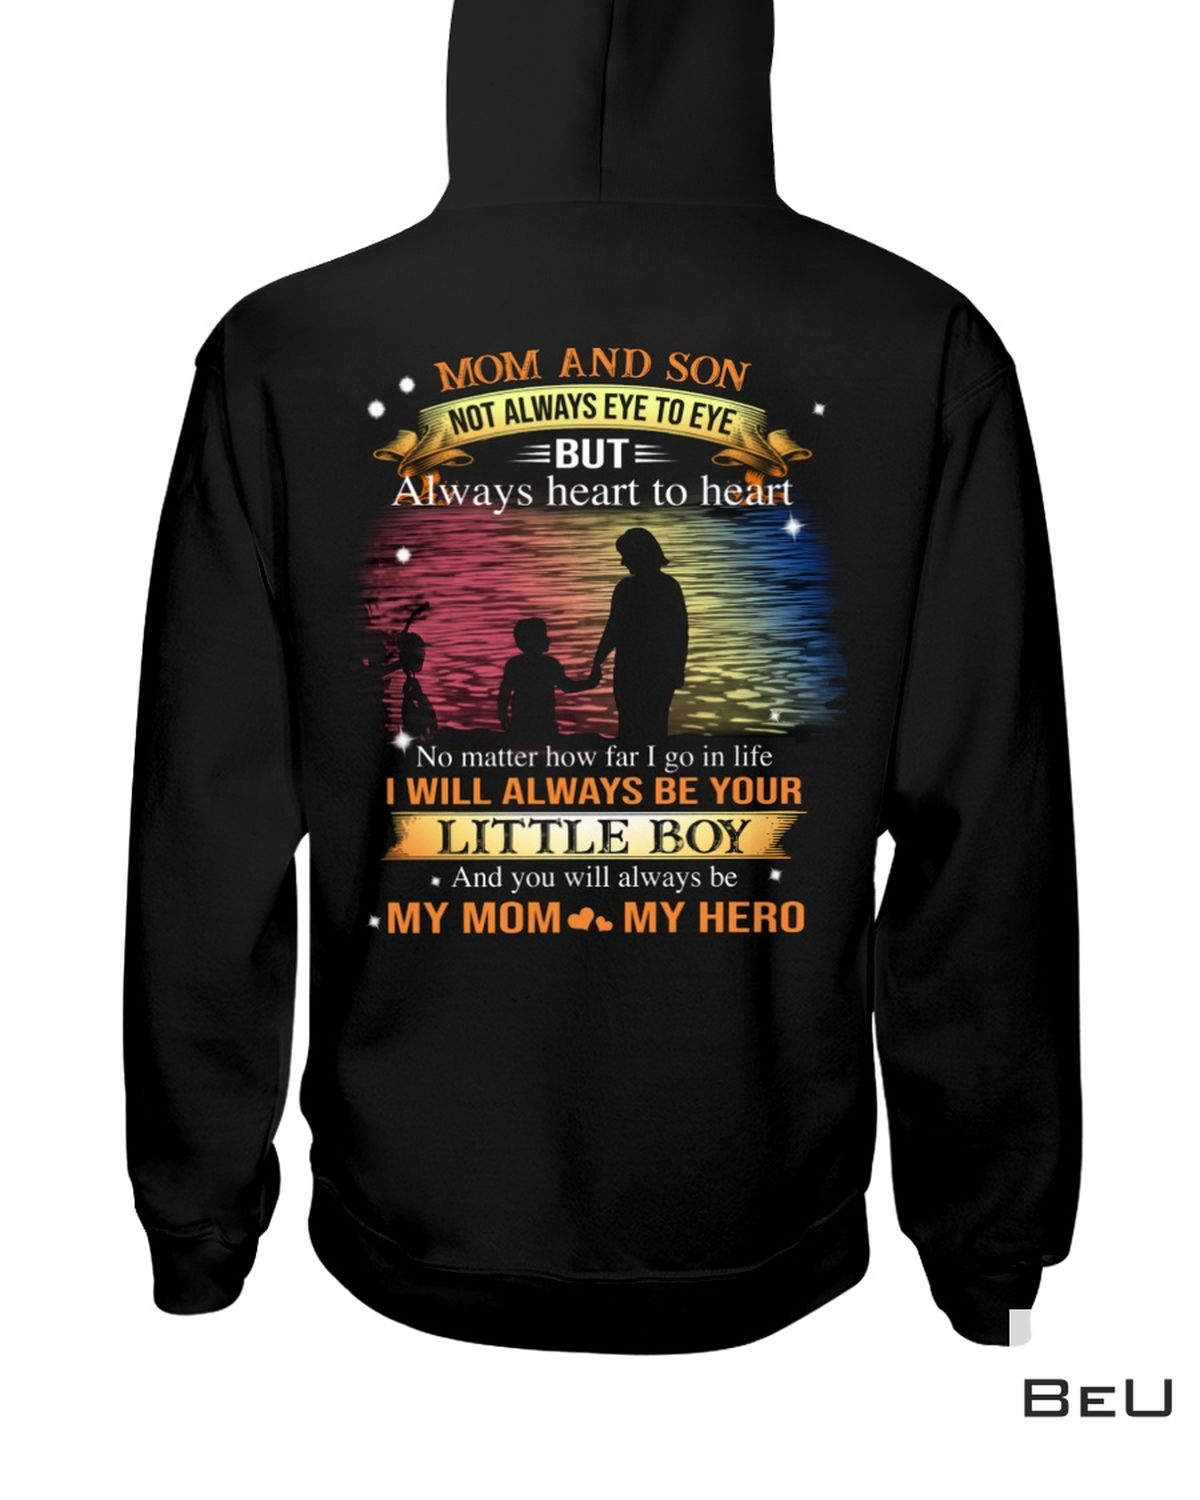 All Over Print Mom And Son Not Always Eye To Eye But Always Heart To Heart Shirt, hoodie, tank top